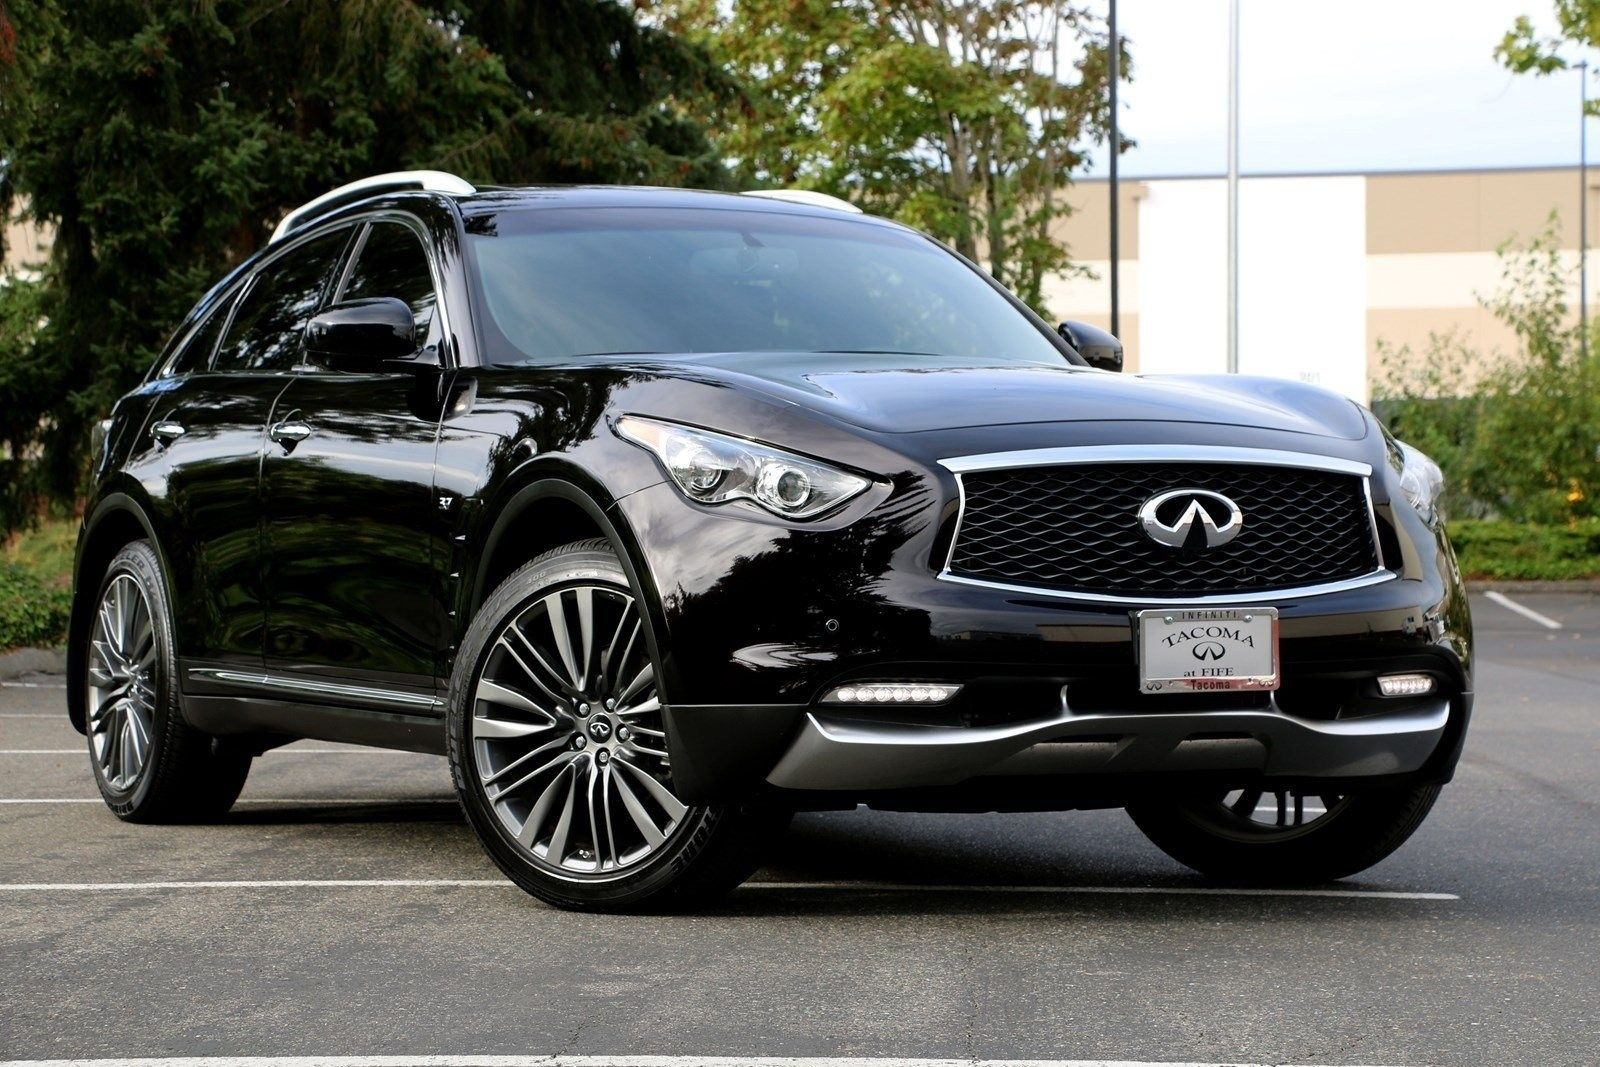 Best 2020 Infiniti Qx70 Concept First Drive Price Sports Cars Luxury New Infiniti Infiniti